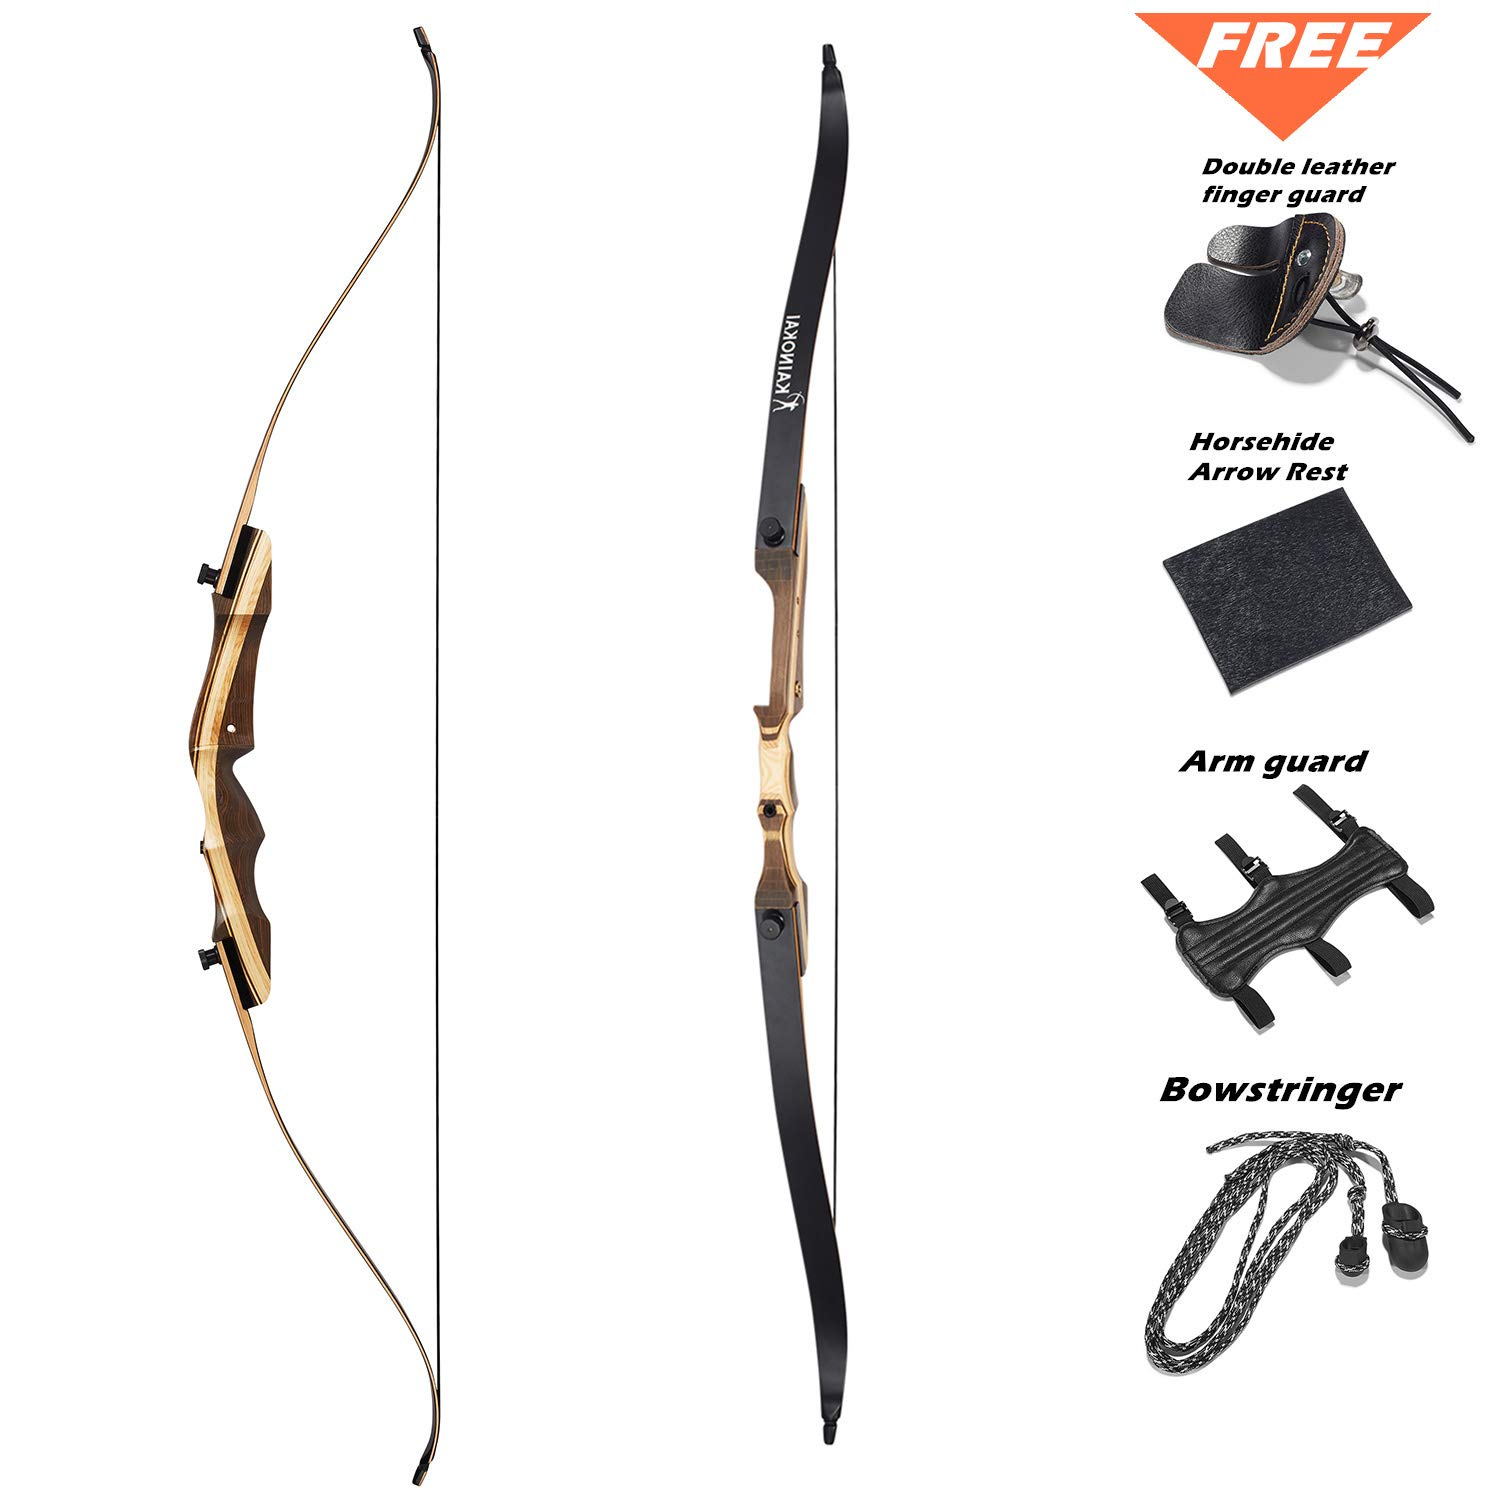 KAINOKAI 62'' Takedown Recurve Bow,Right & Left Hand,Hunting Recurve Archery Bow for Teens and Adults,15-60 lbs (Left Hand, 20lb) by KAINOKAI